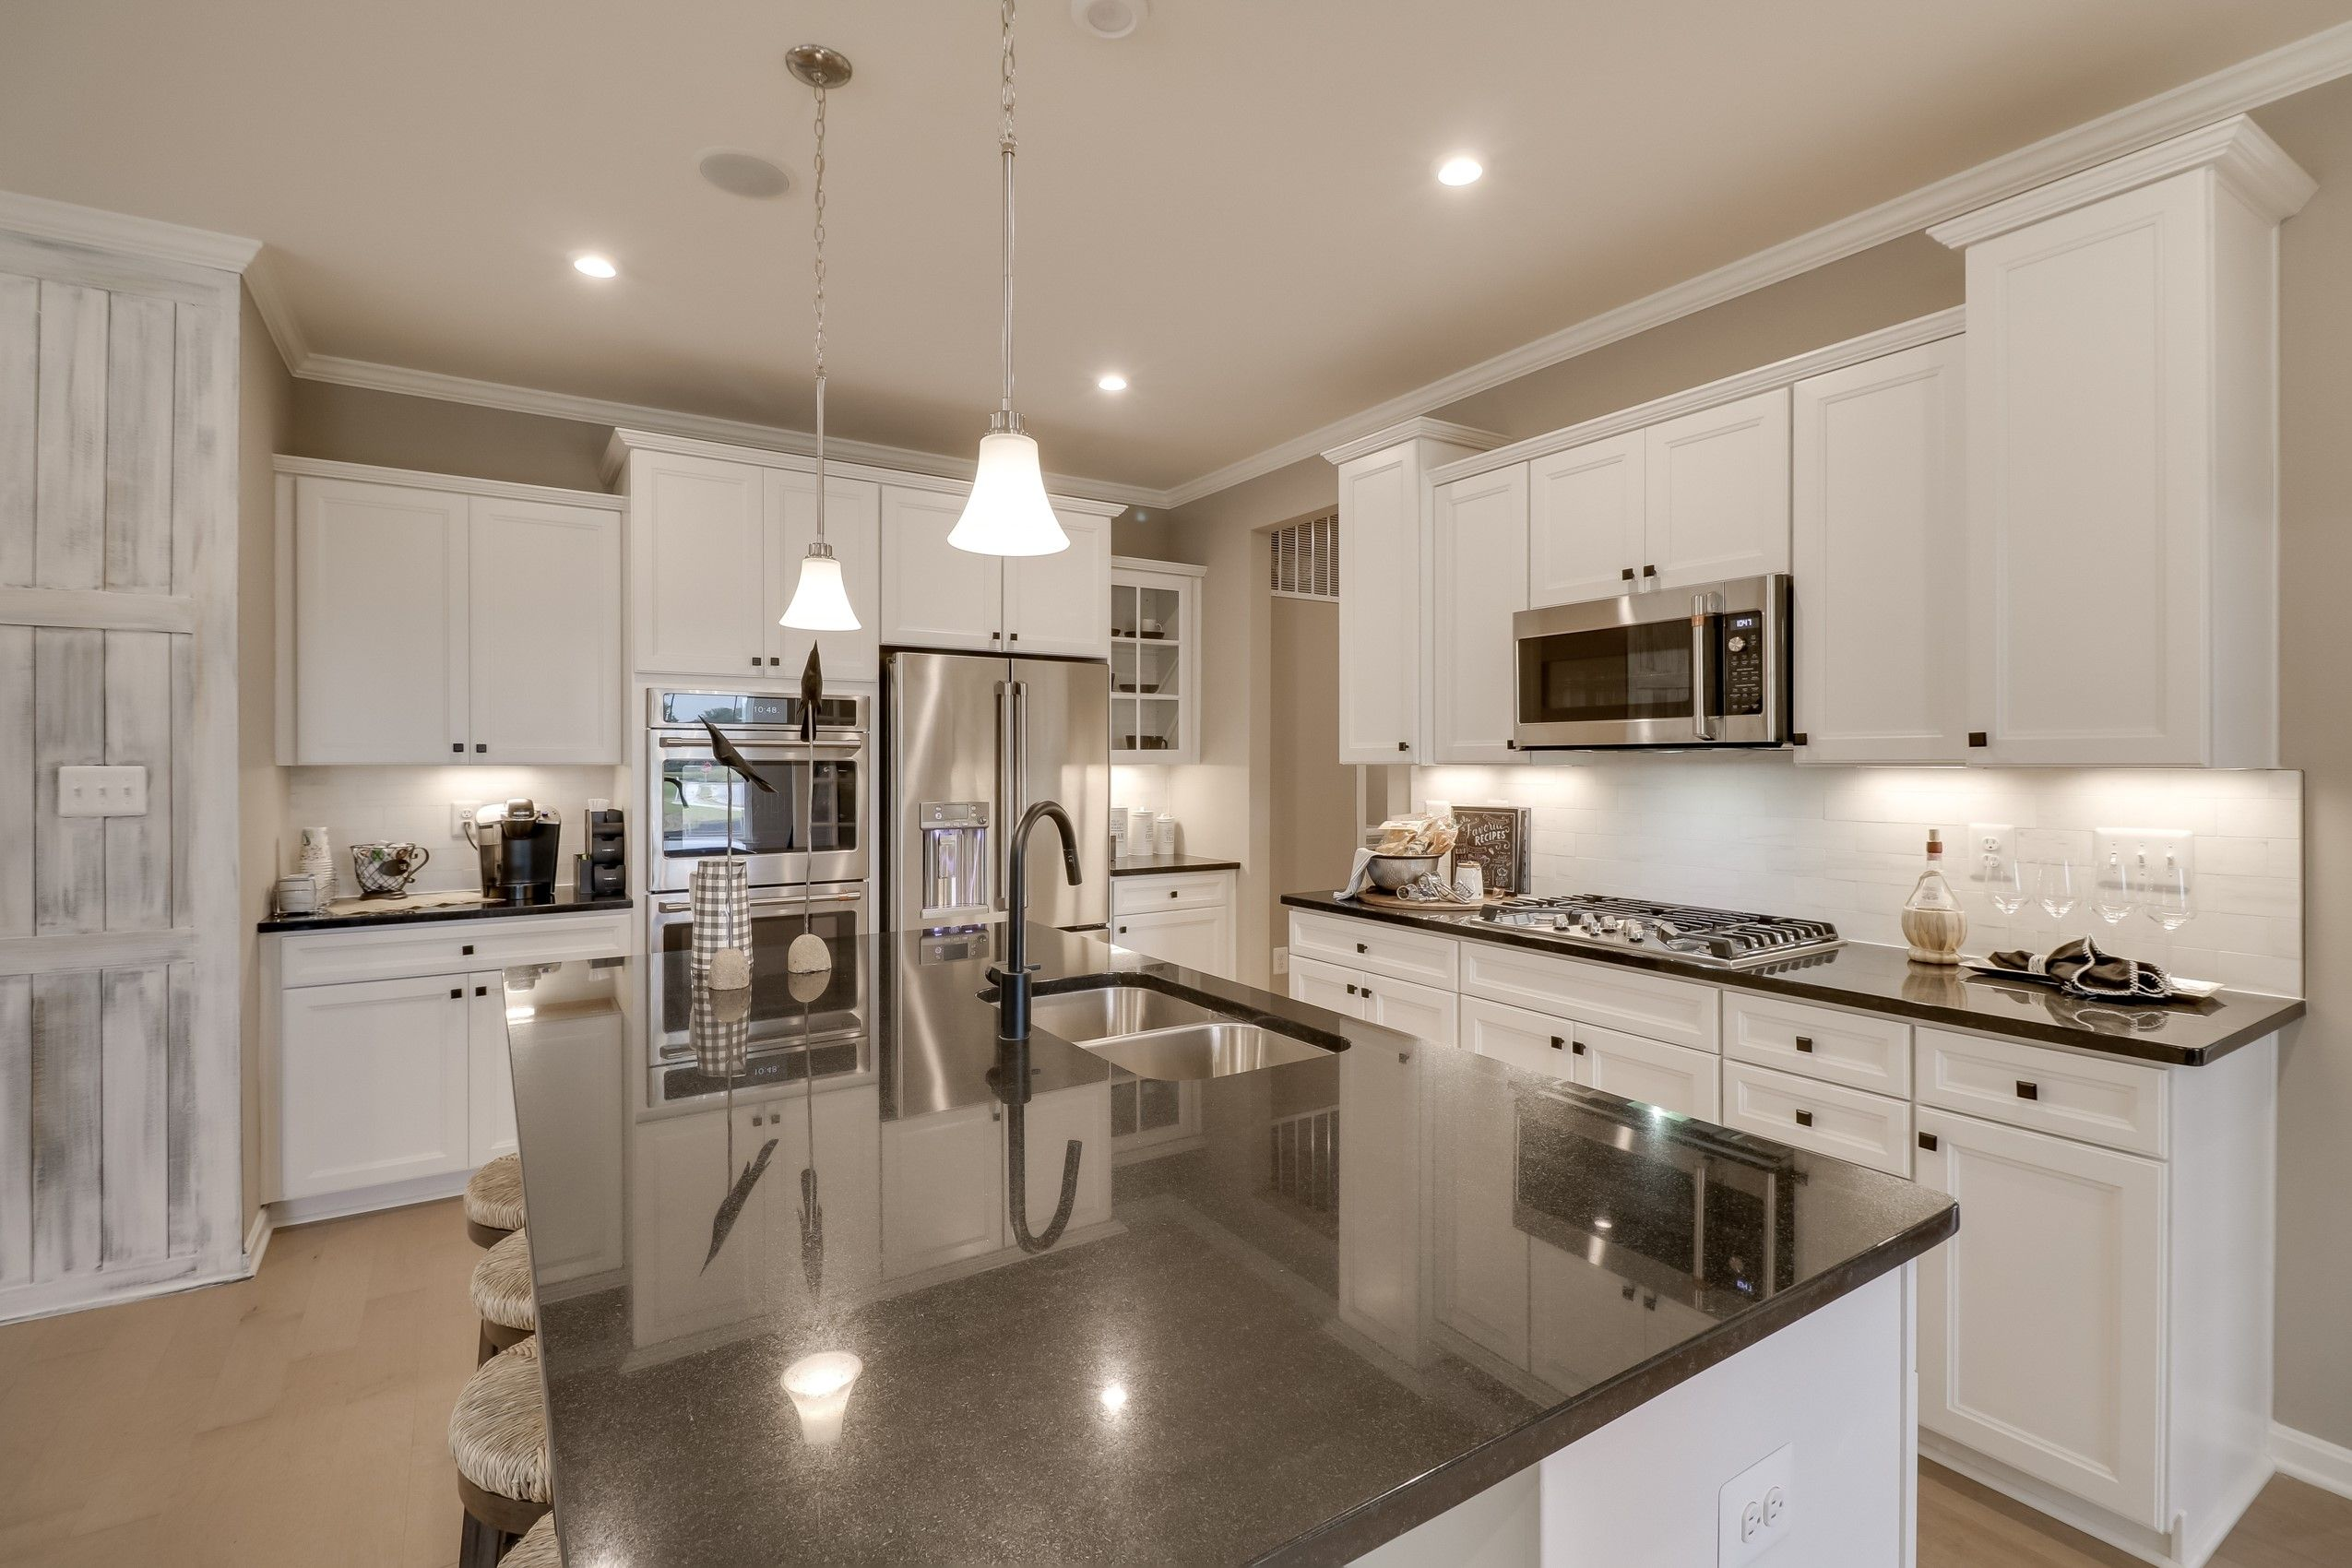 Kitchen featured in the Eastwood By K. Hovnanian's® Four Seasons in Sussex, DE